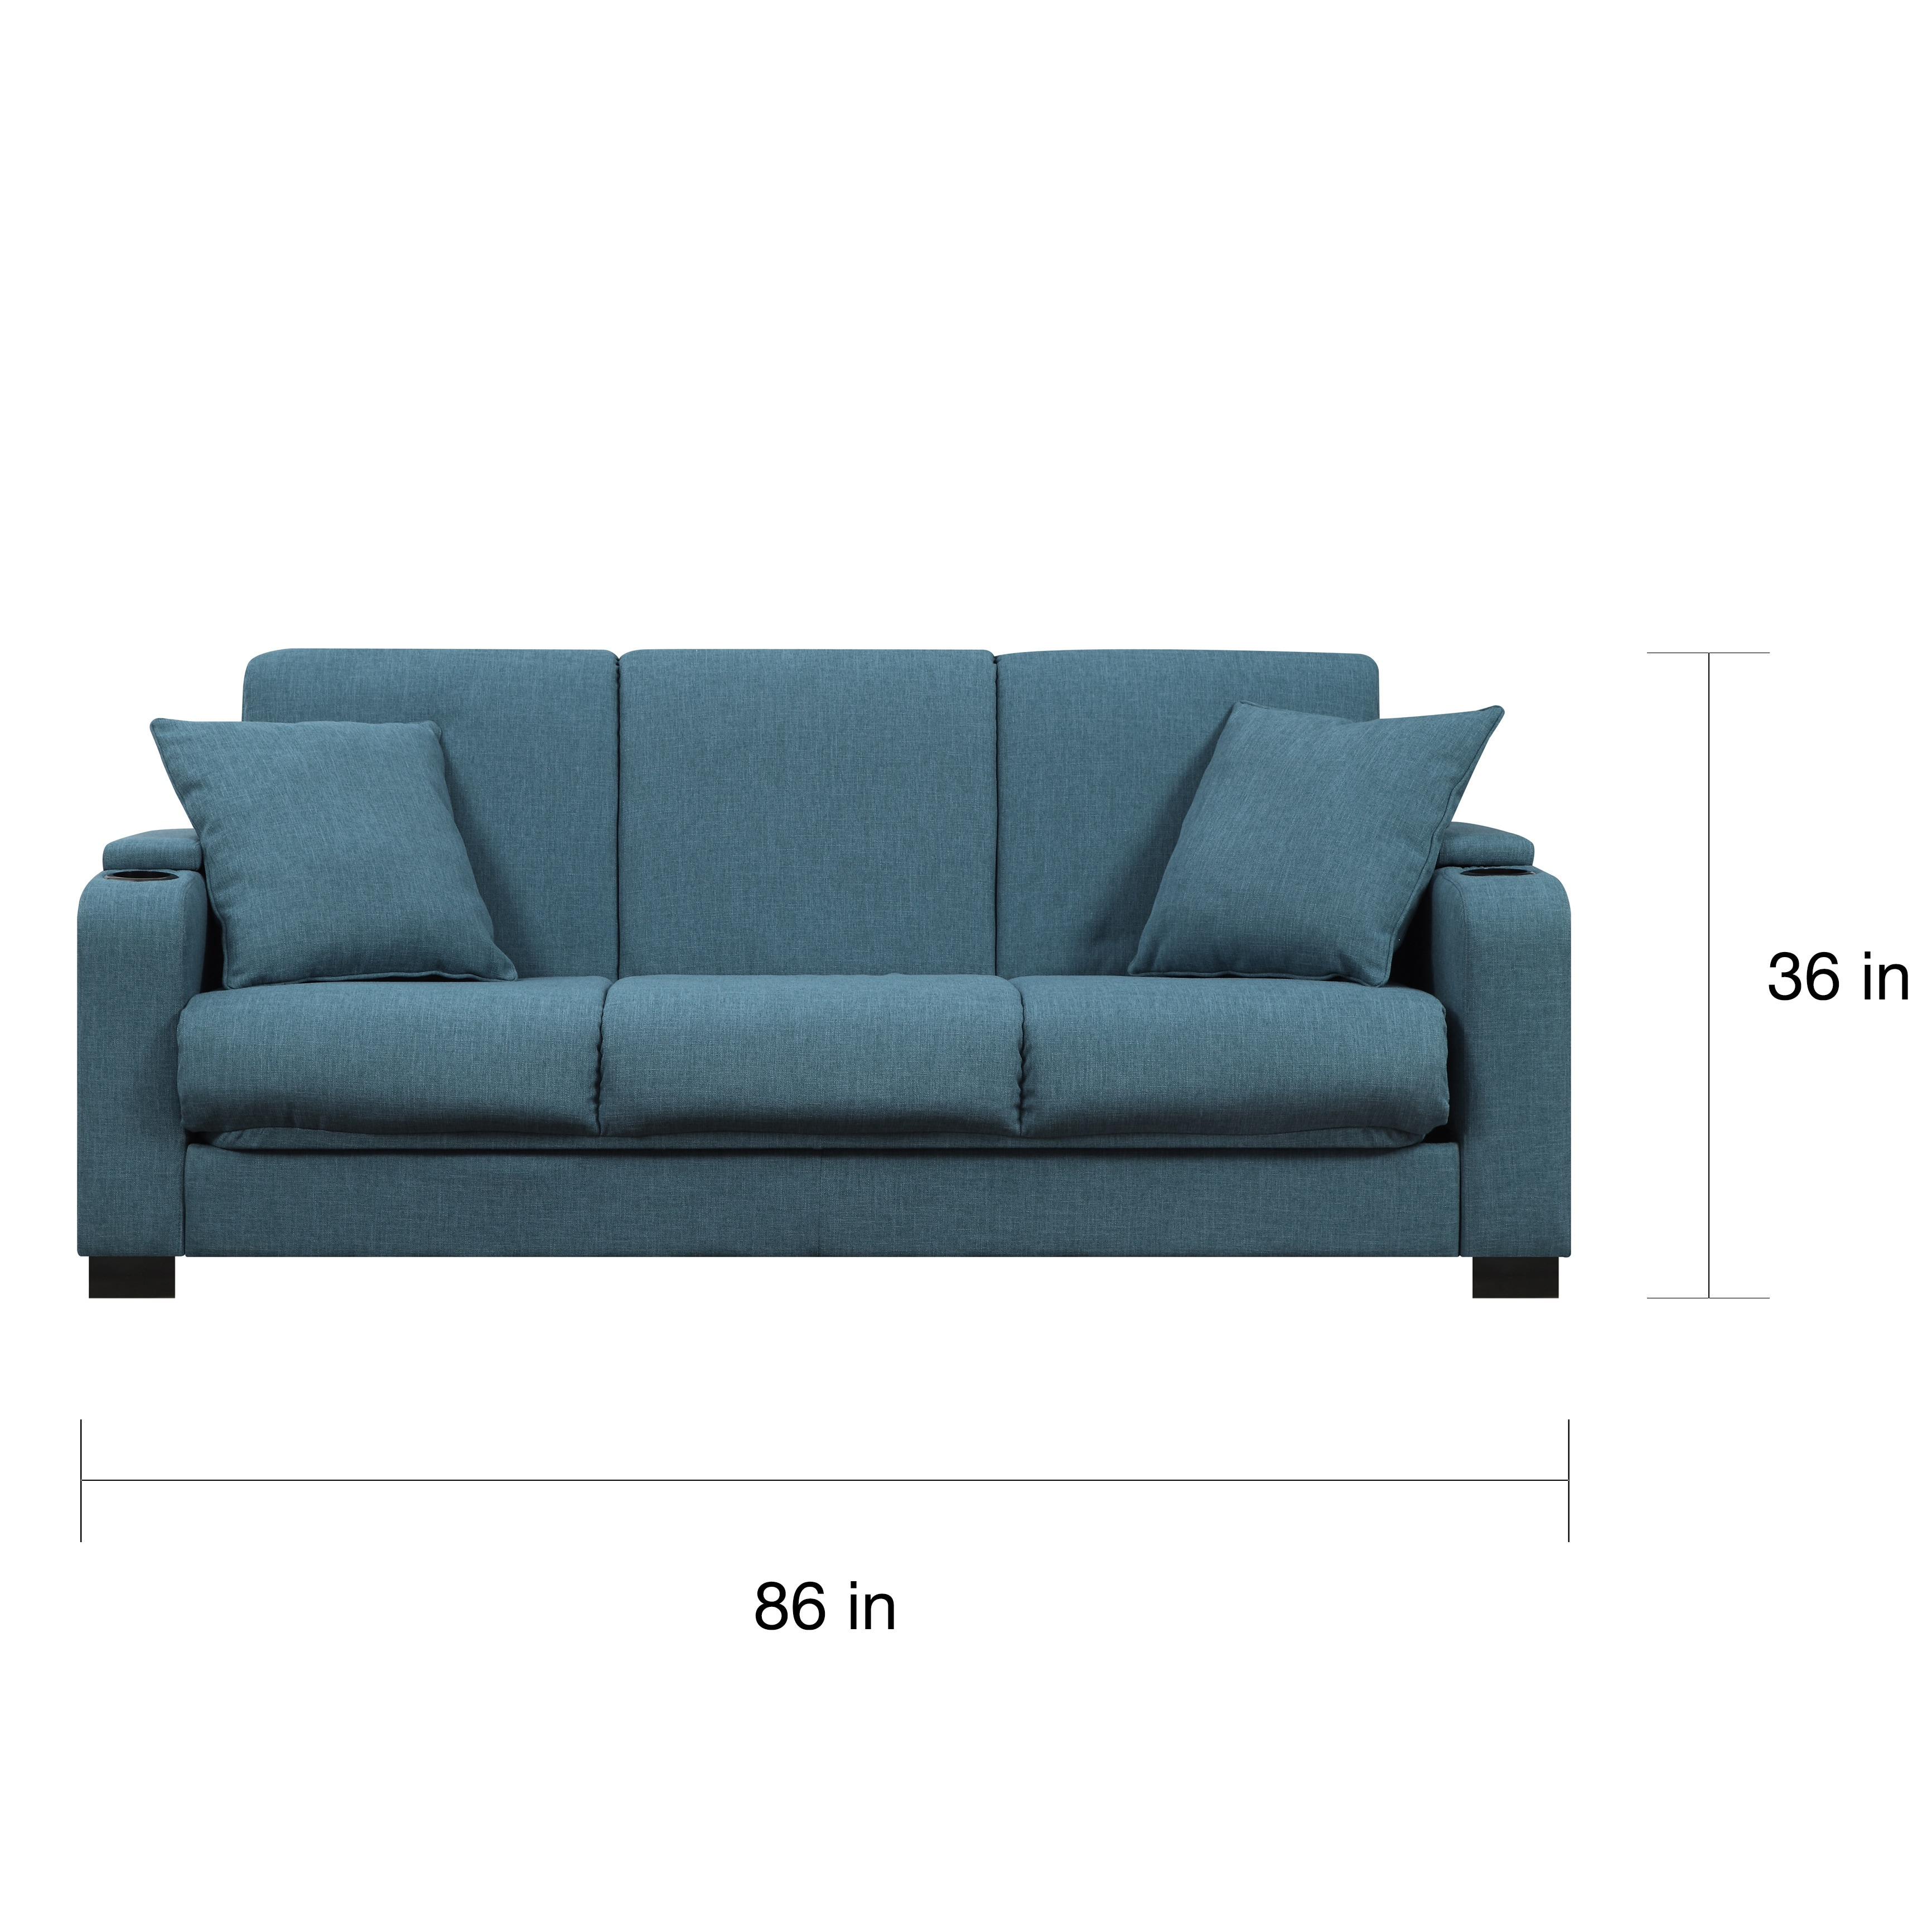 Handy Living Storage Arm Convert A Couch Blue Linen Futon Sleeper Sofa Free Shipping Today 11736514